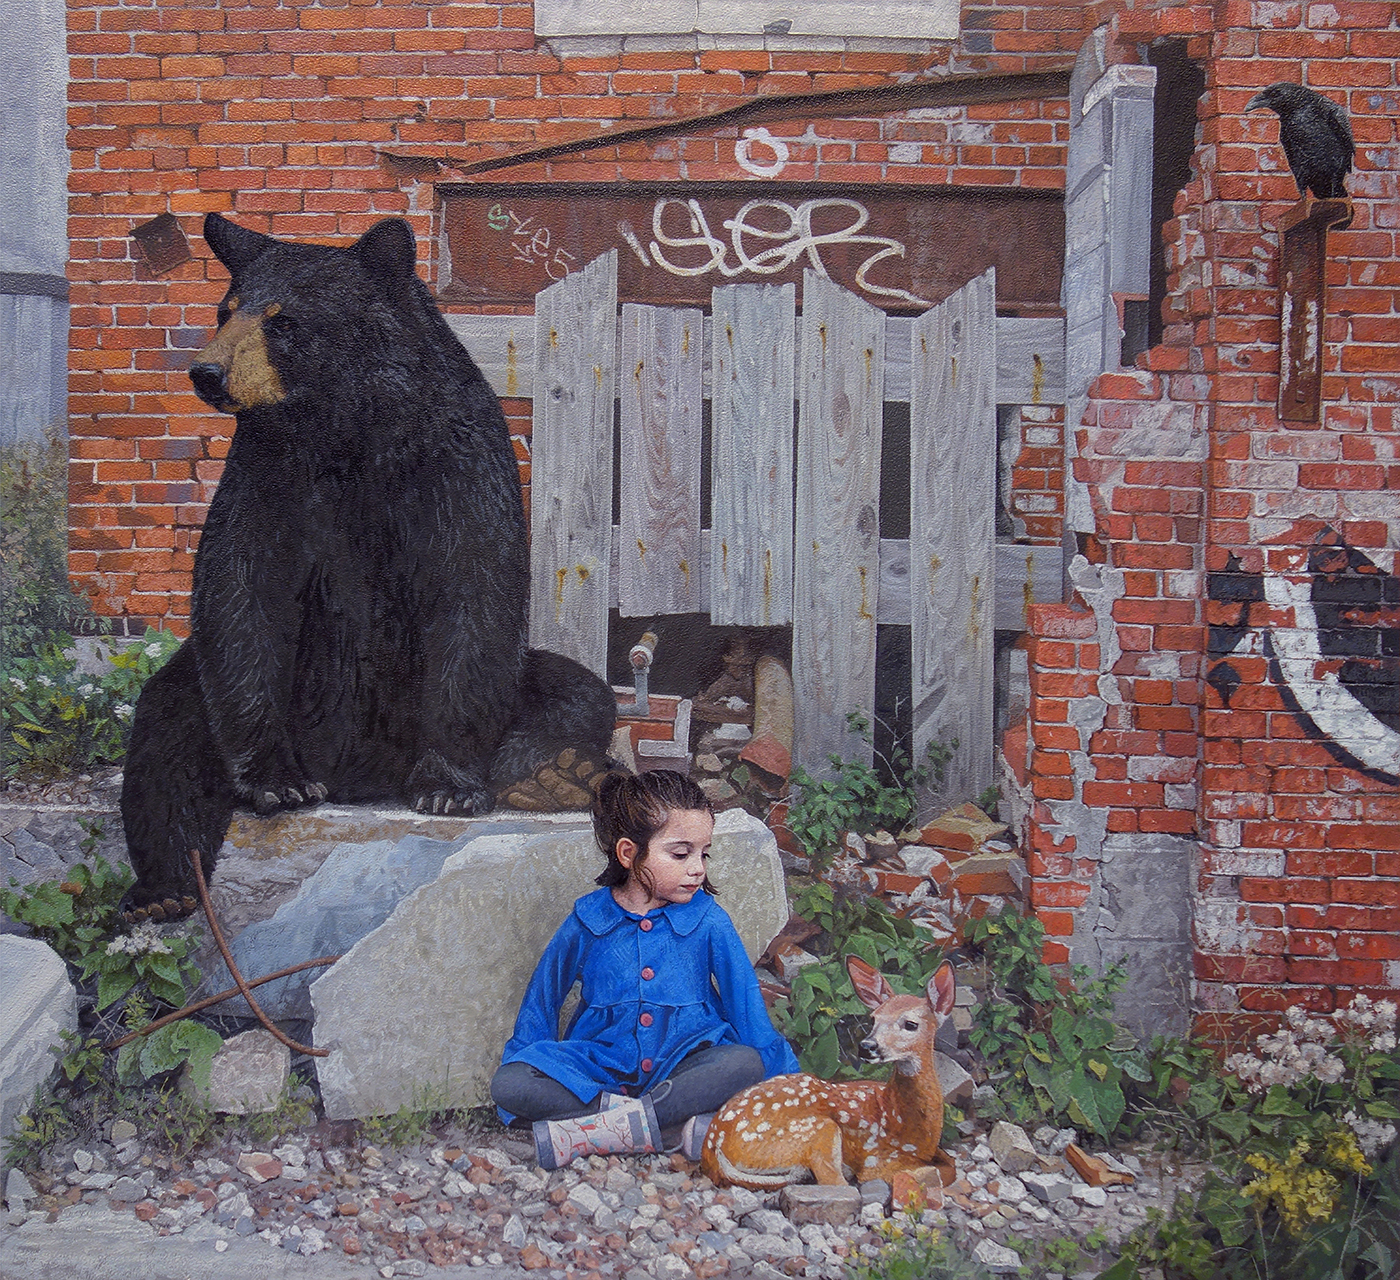 Young Children Accompanied by Wildlife Take a Stance Among Urban Decay in Paintings by Kevin Peterson